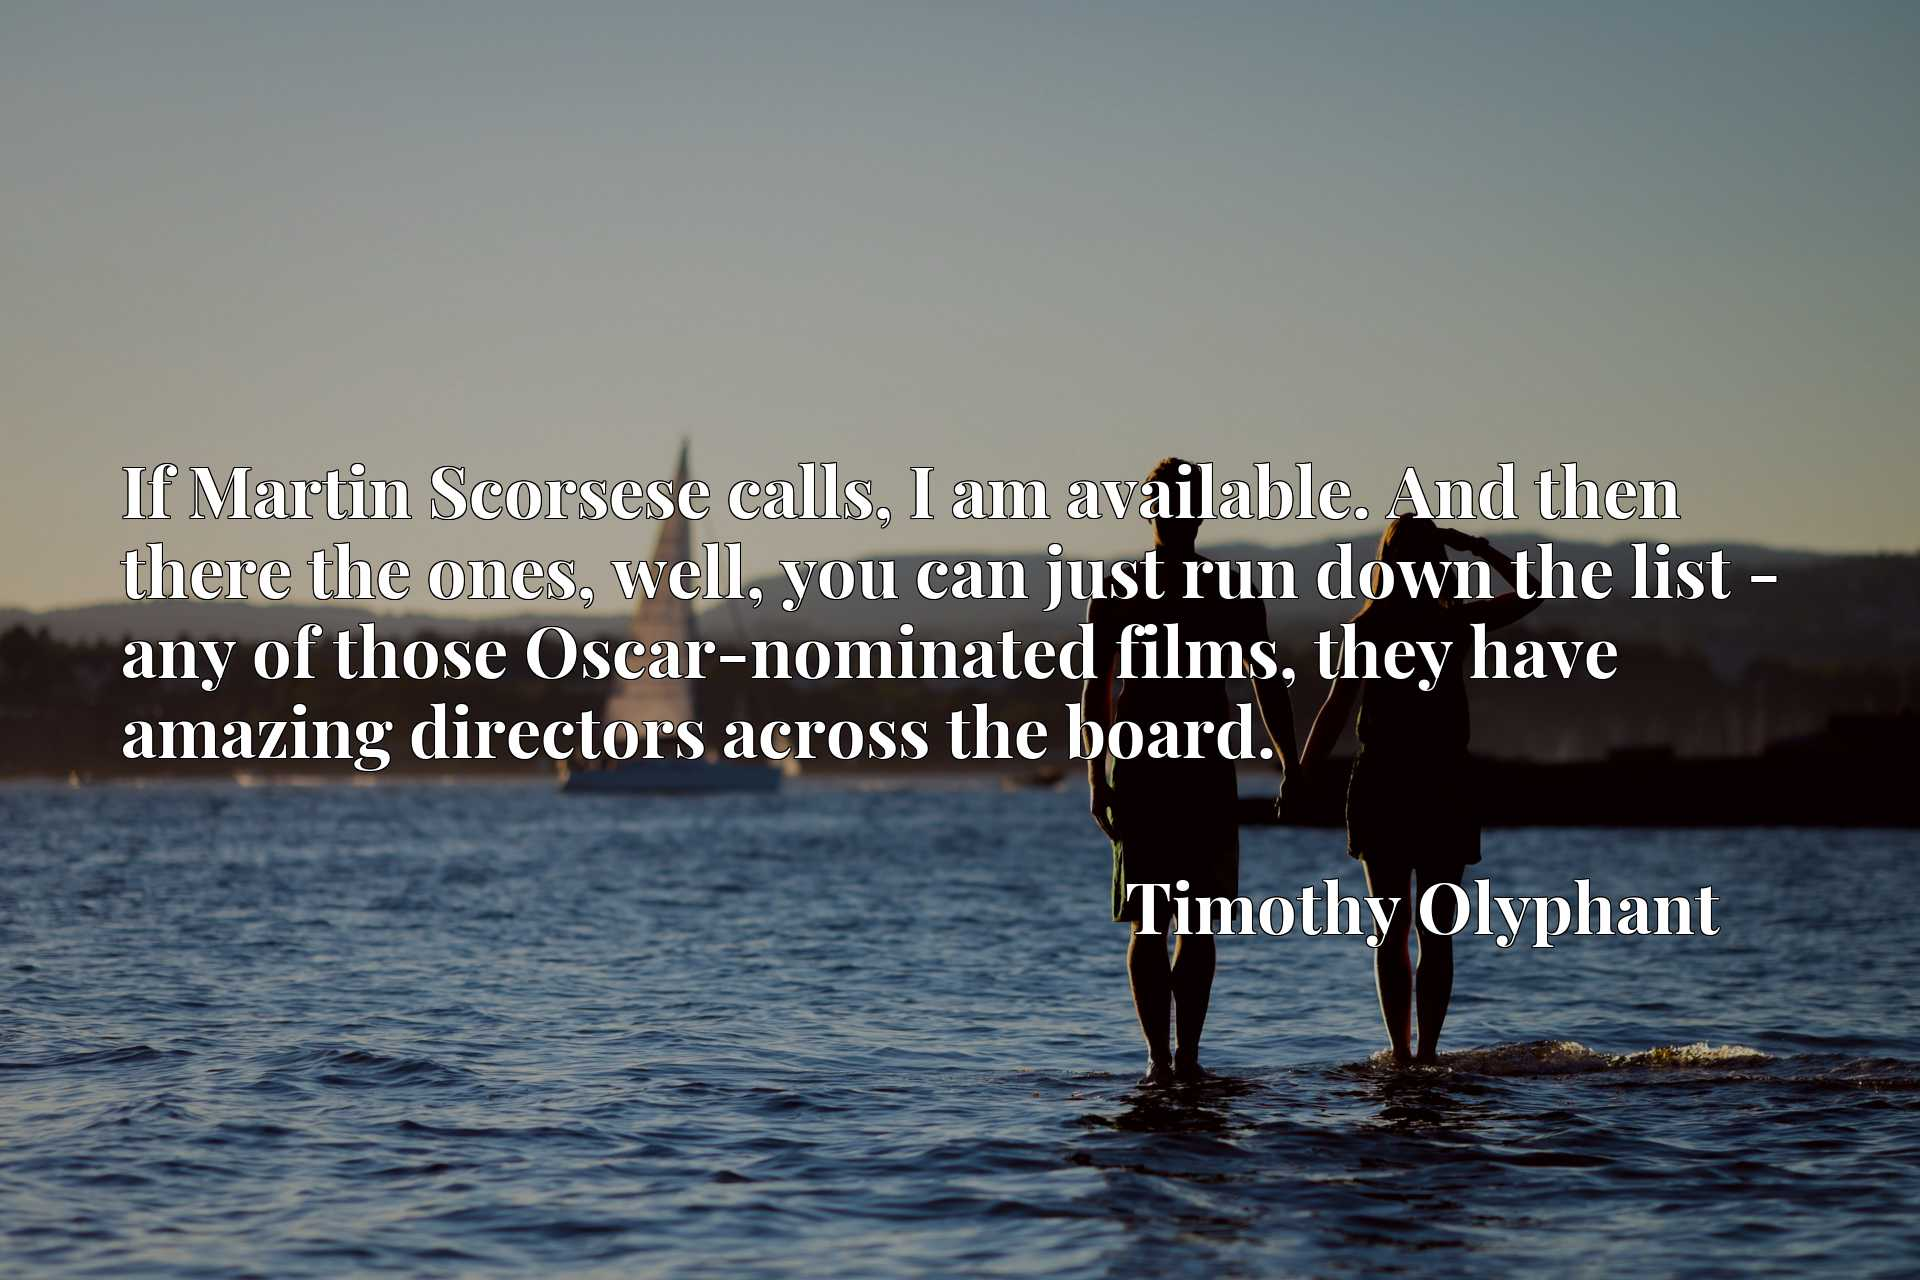 If Martin Scorsese calls, I am available. And then there the ones, well, you can just run down the list - any of those Oscar-nominated films, they have amazing directors across the board.